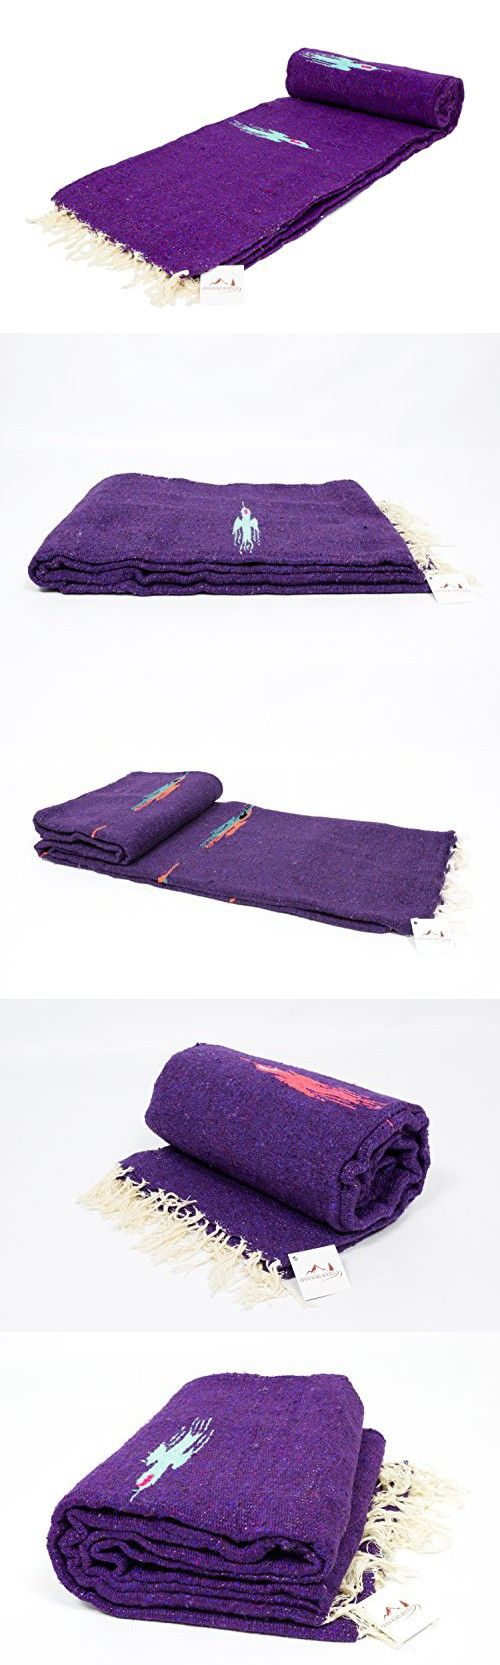 Purple Yoga Blanket -- Thick Mexican Thunderbird blanket -- Handmade and Made for Yoga!